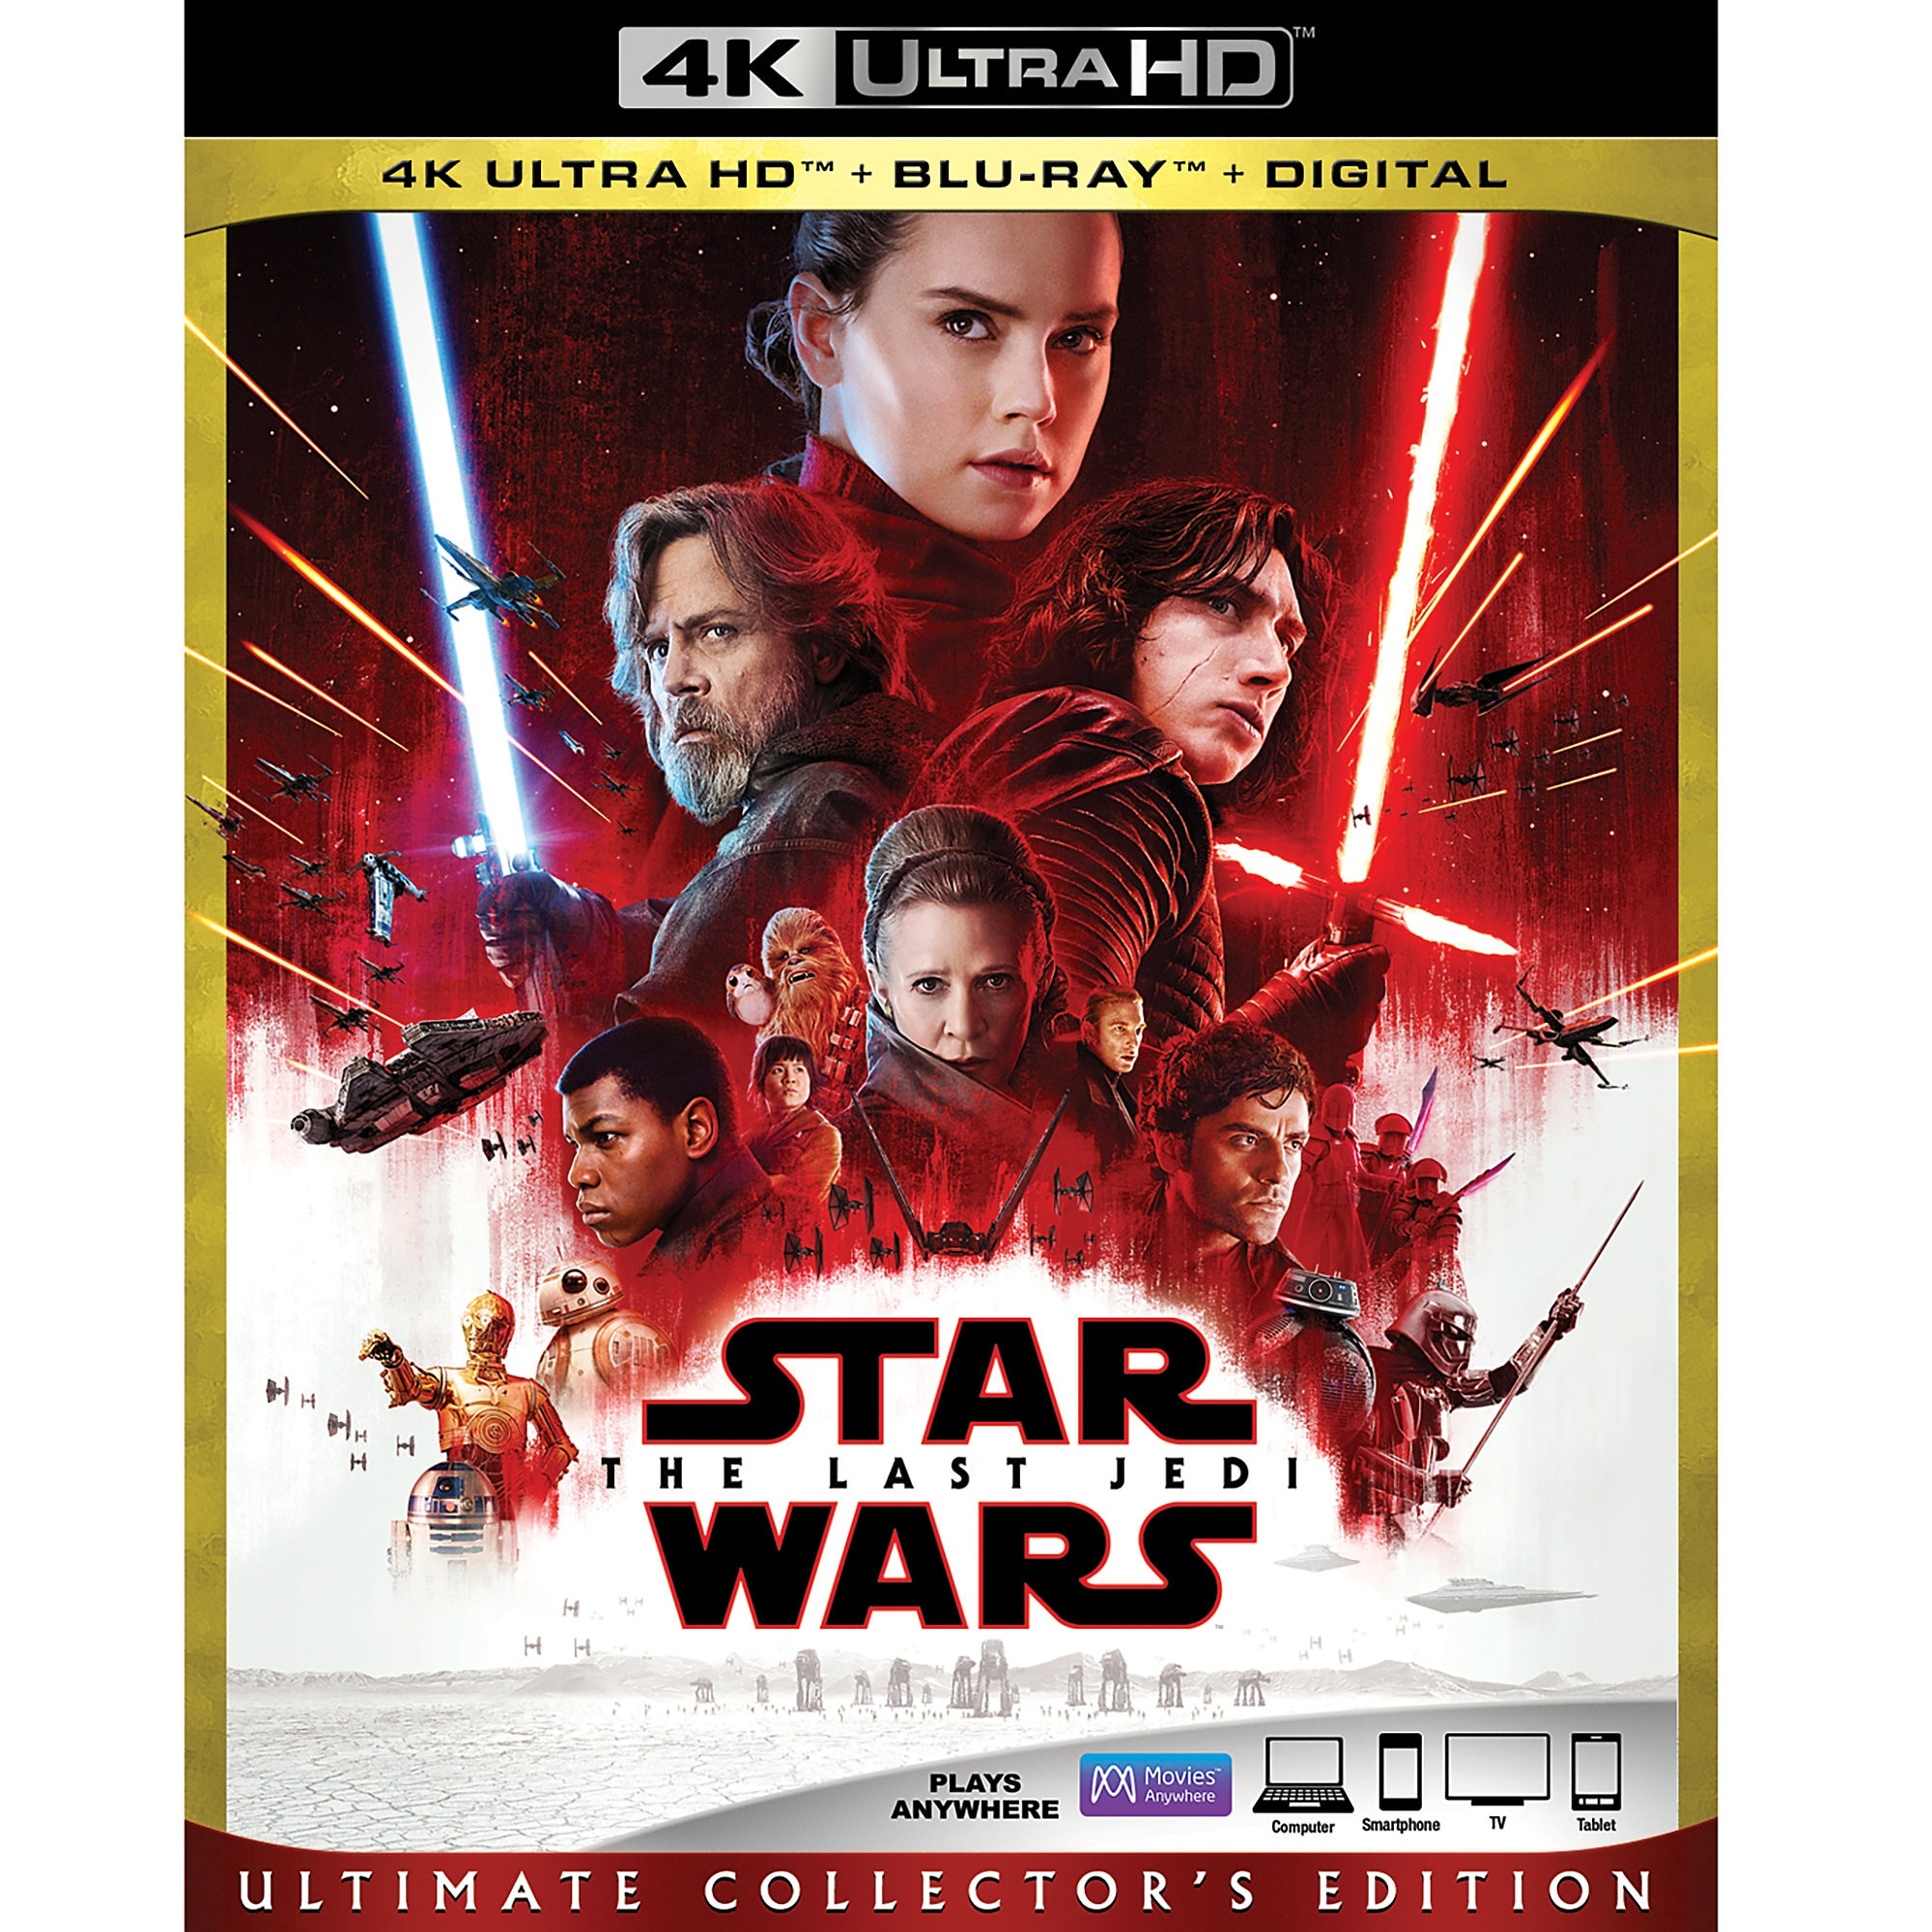 Star Wars: The Last Jedi 4K Ultra HD